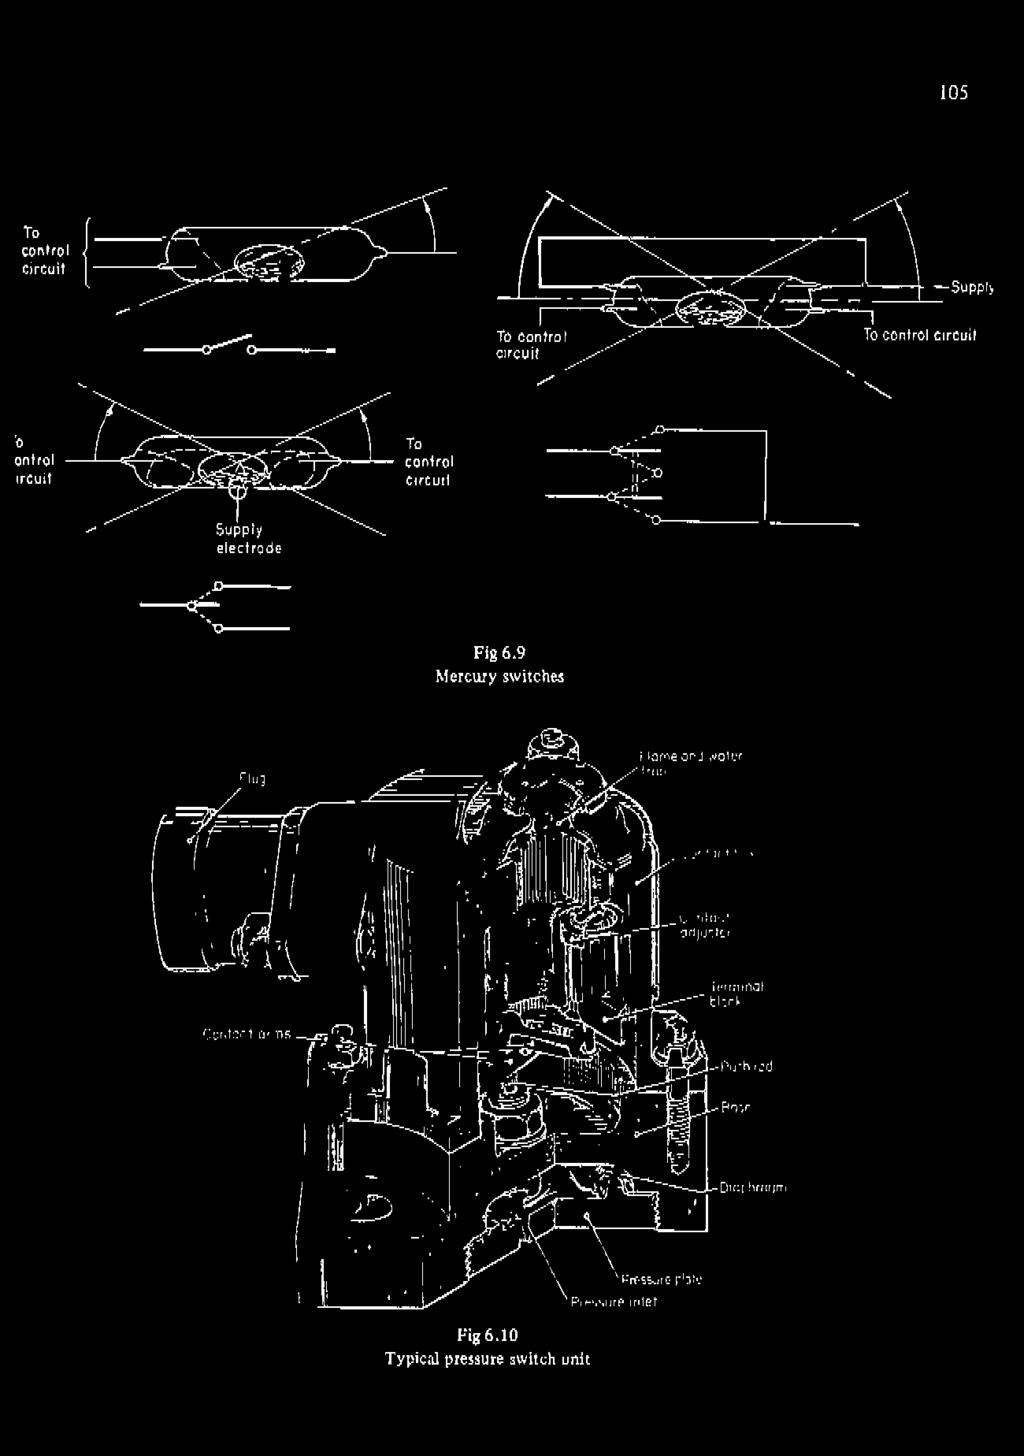 Aircraft Electrical Systems Pdf Schematic Diagram Relaycontrol Controlcircuit Circuit O To Con1rol Flg6